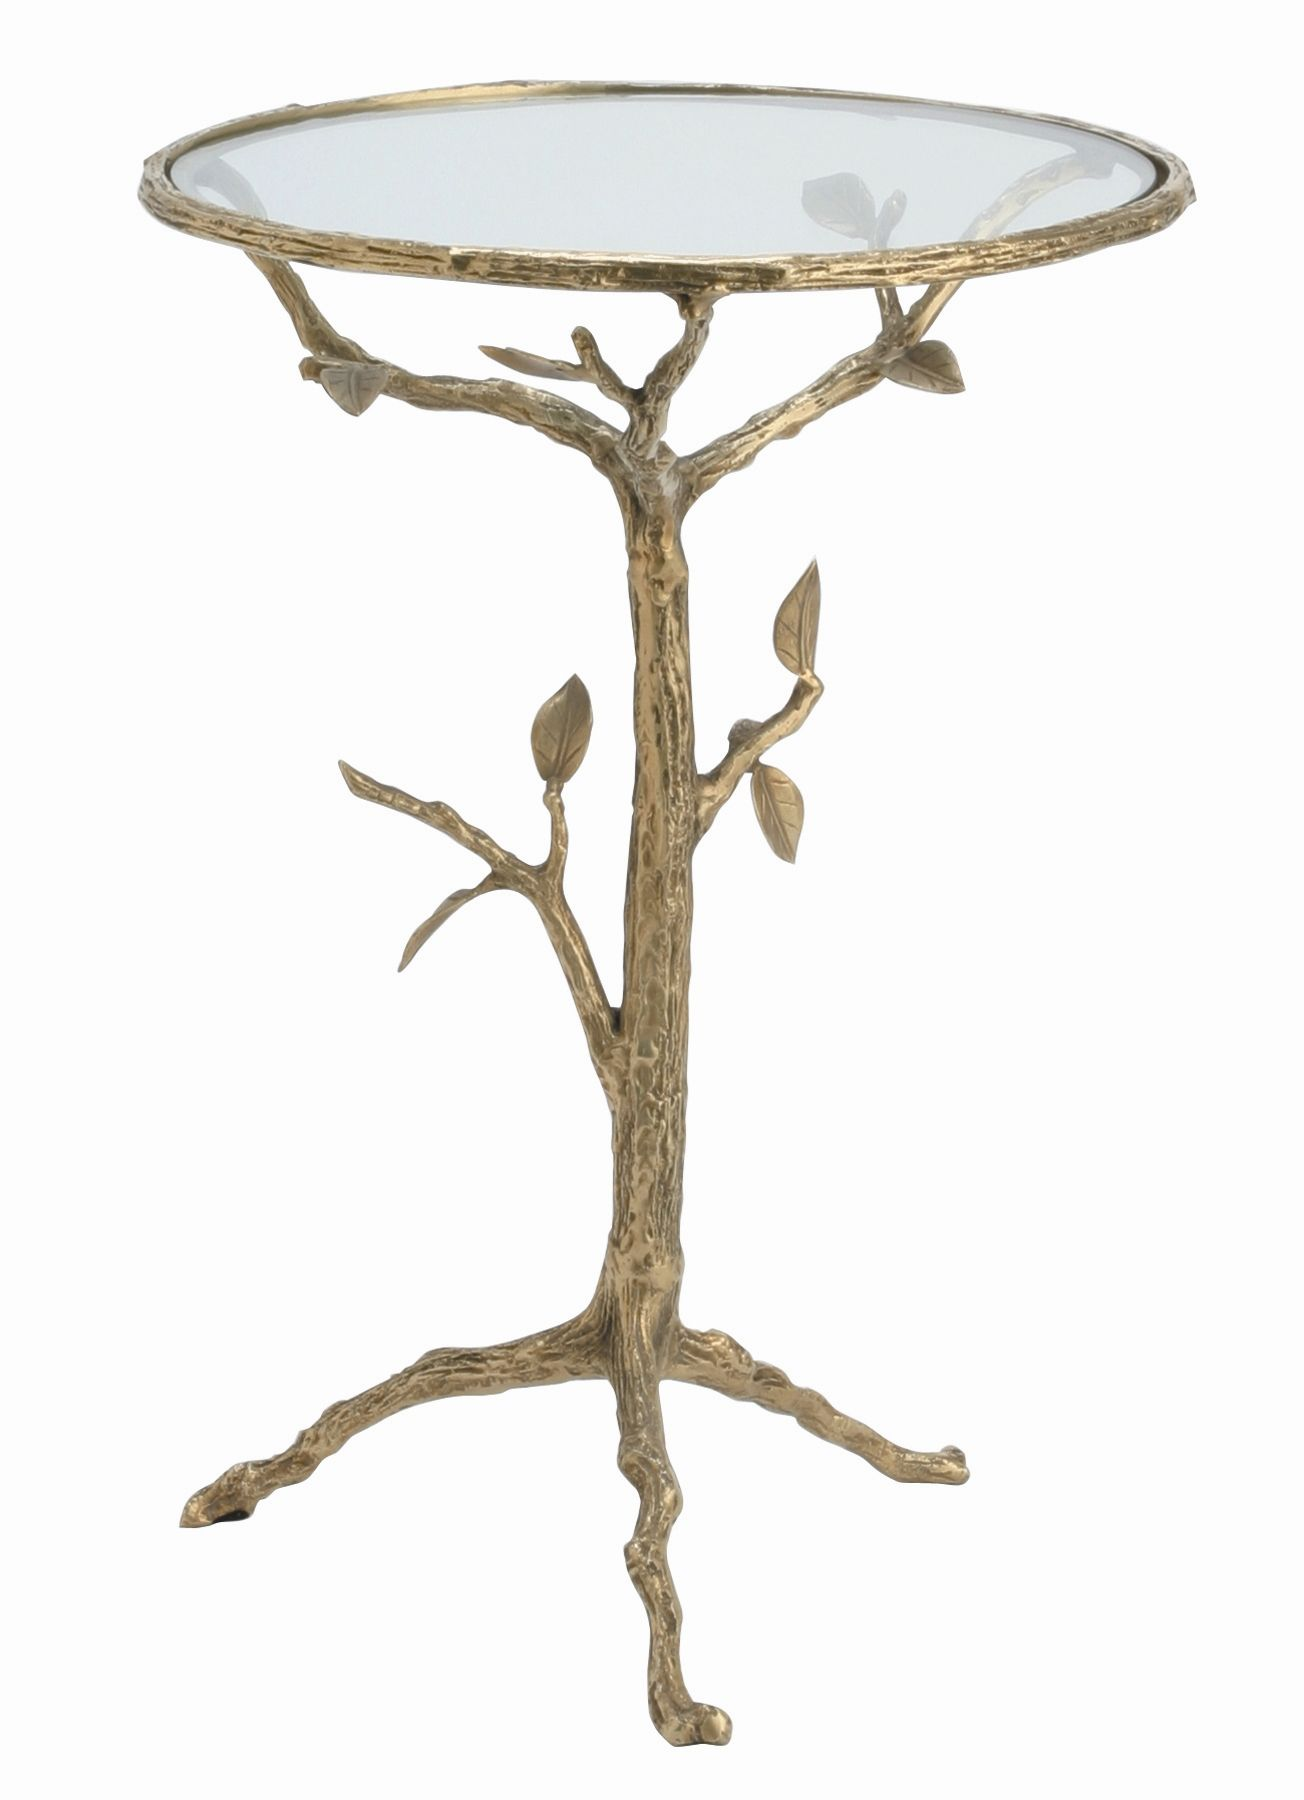 ARTERIORS Home Sherwood Accent Table in Distressed Antique Brass